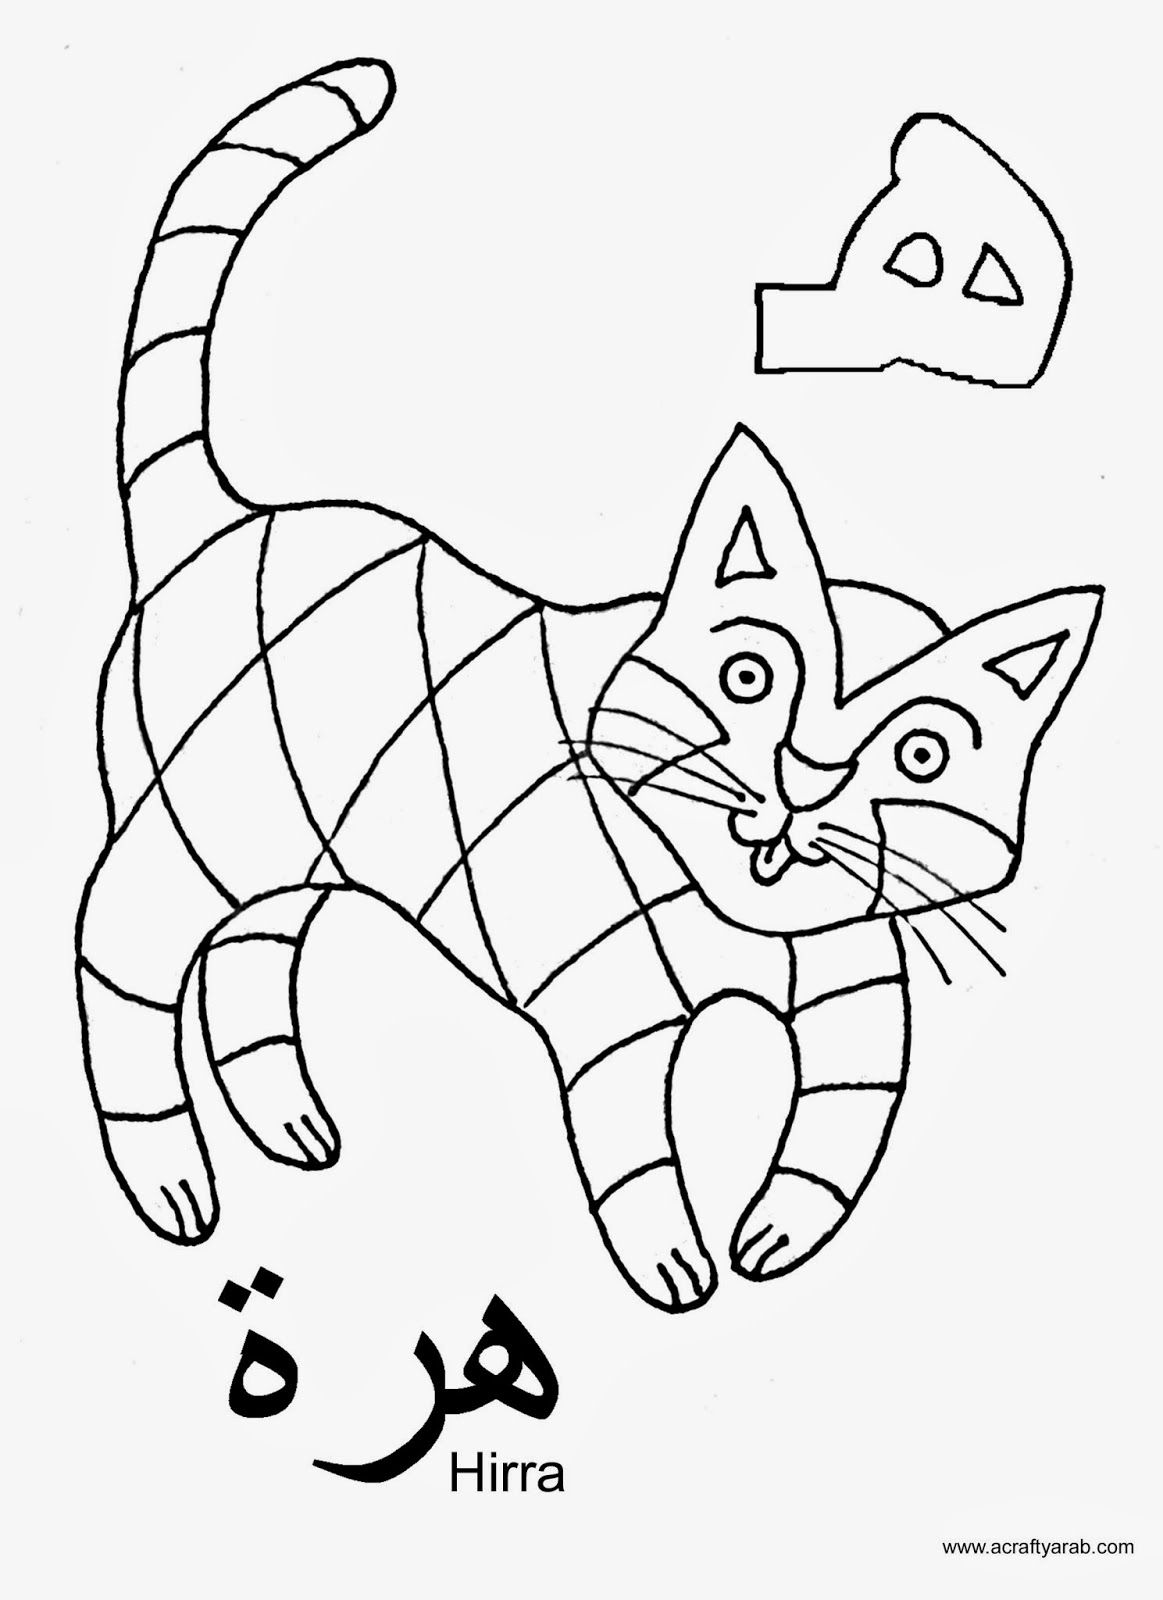 A Crafty Arab Arabic Alphabet Coloring Pages Haa Is For